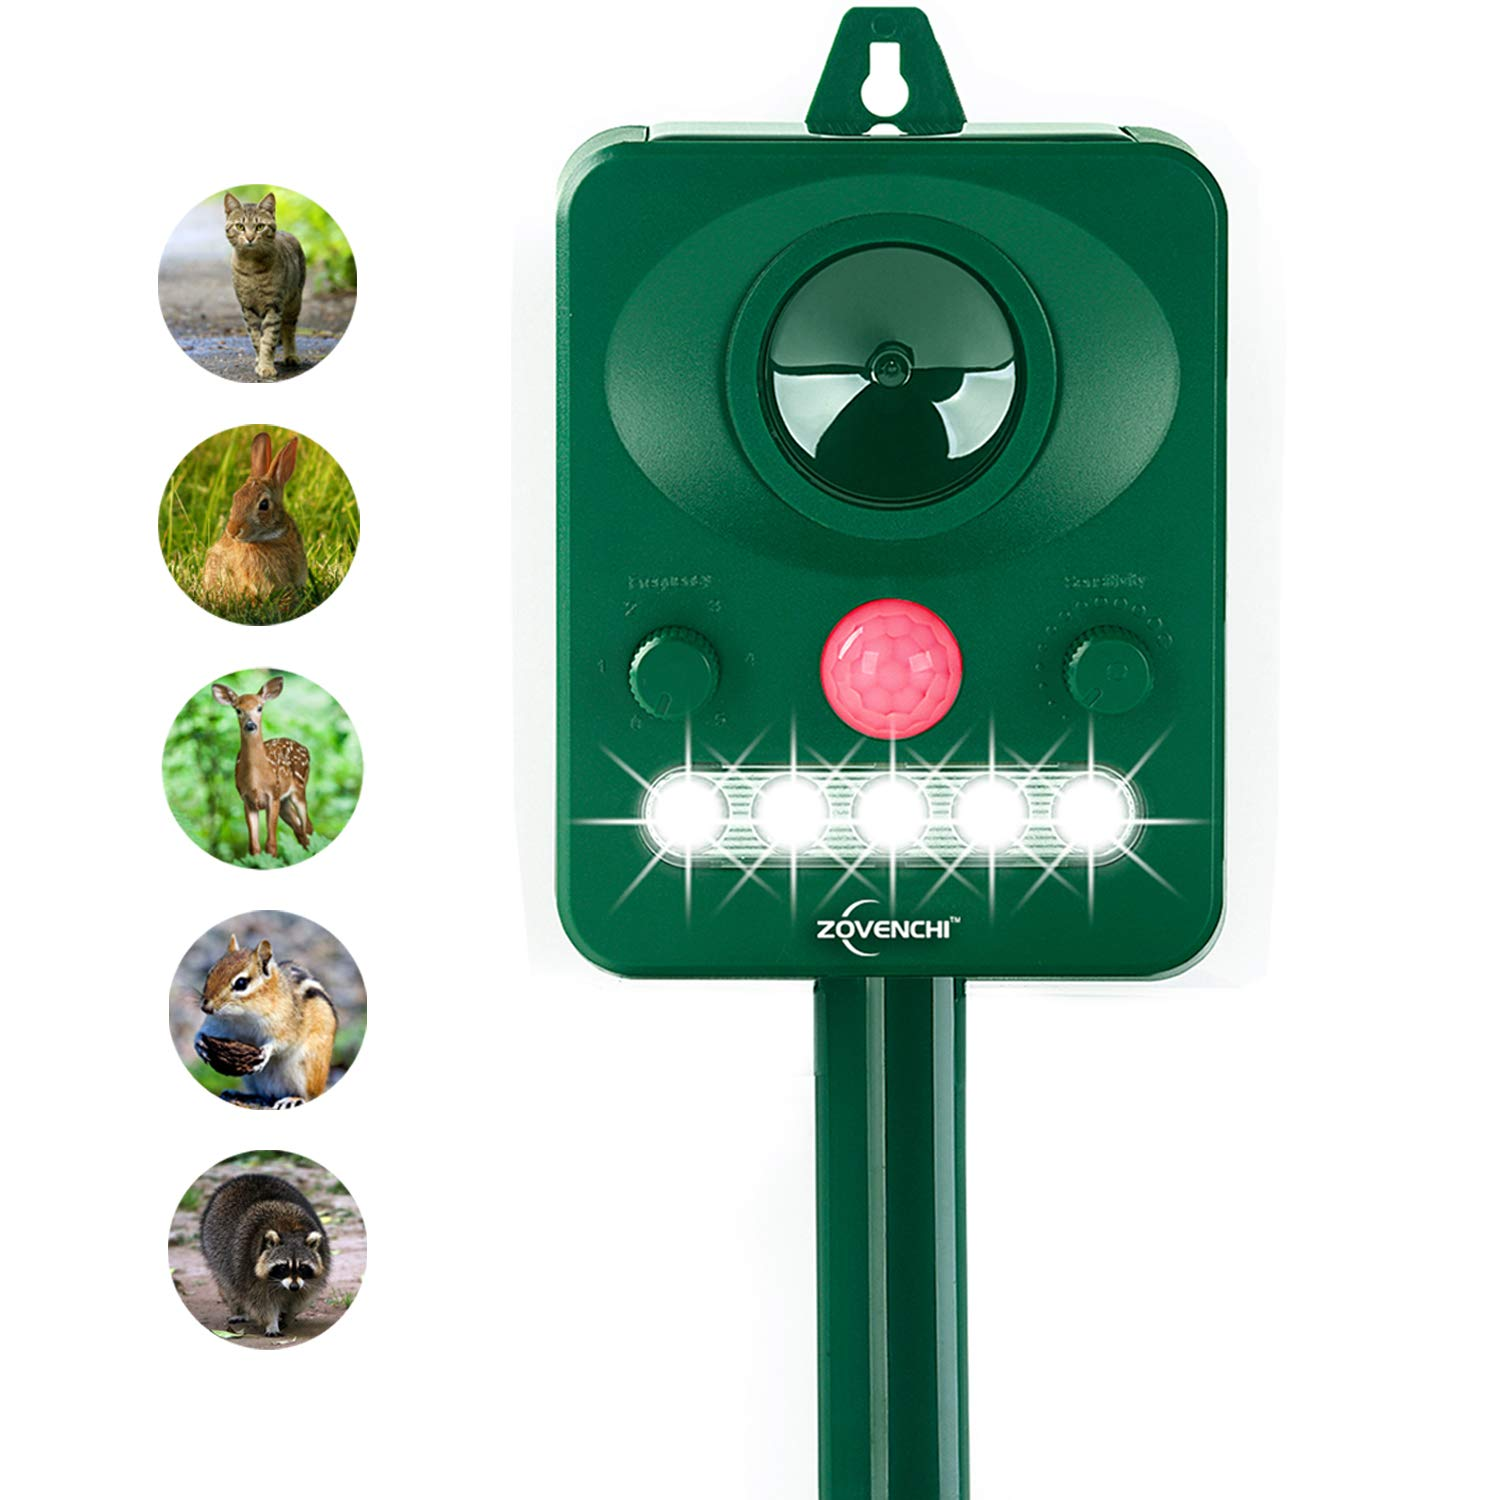 ZOVENCHI Ultrasonic Animal Pest Repellent, Solar Powered Animal Repeller, Motion Activated Flashing LED Light Ultrasonic Sound to Repel Animal Away